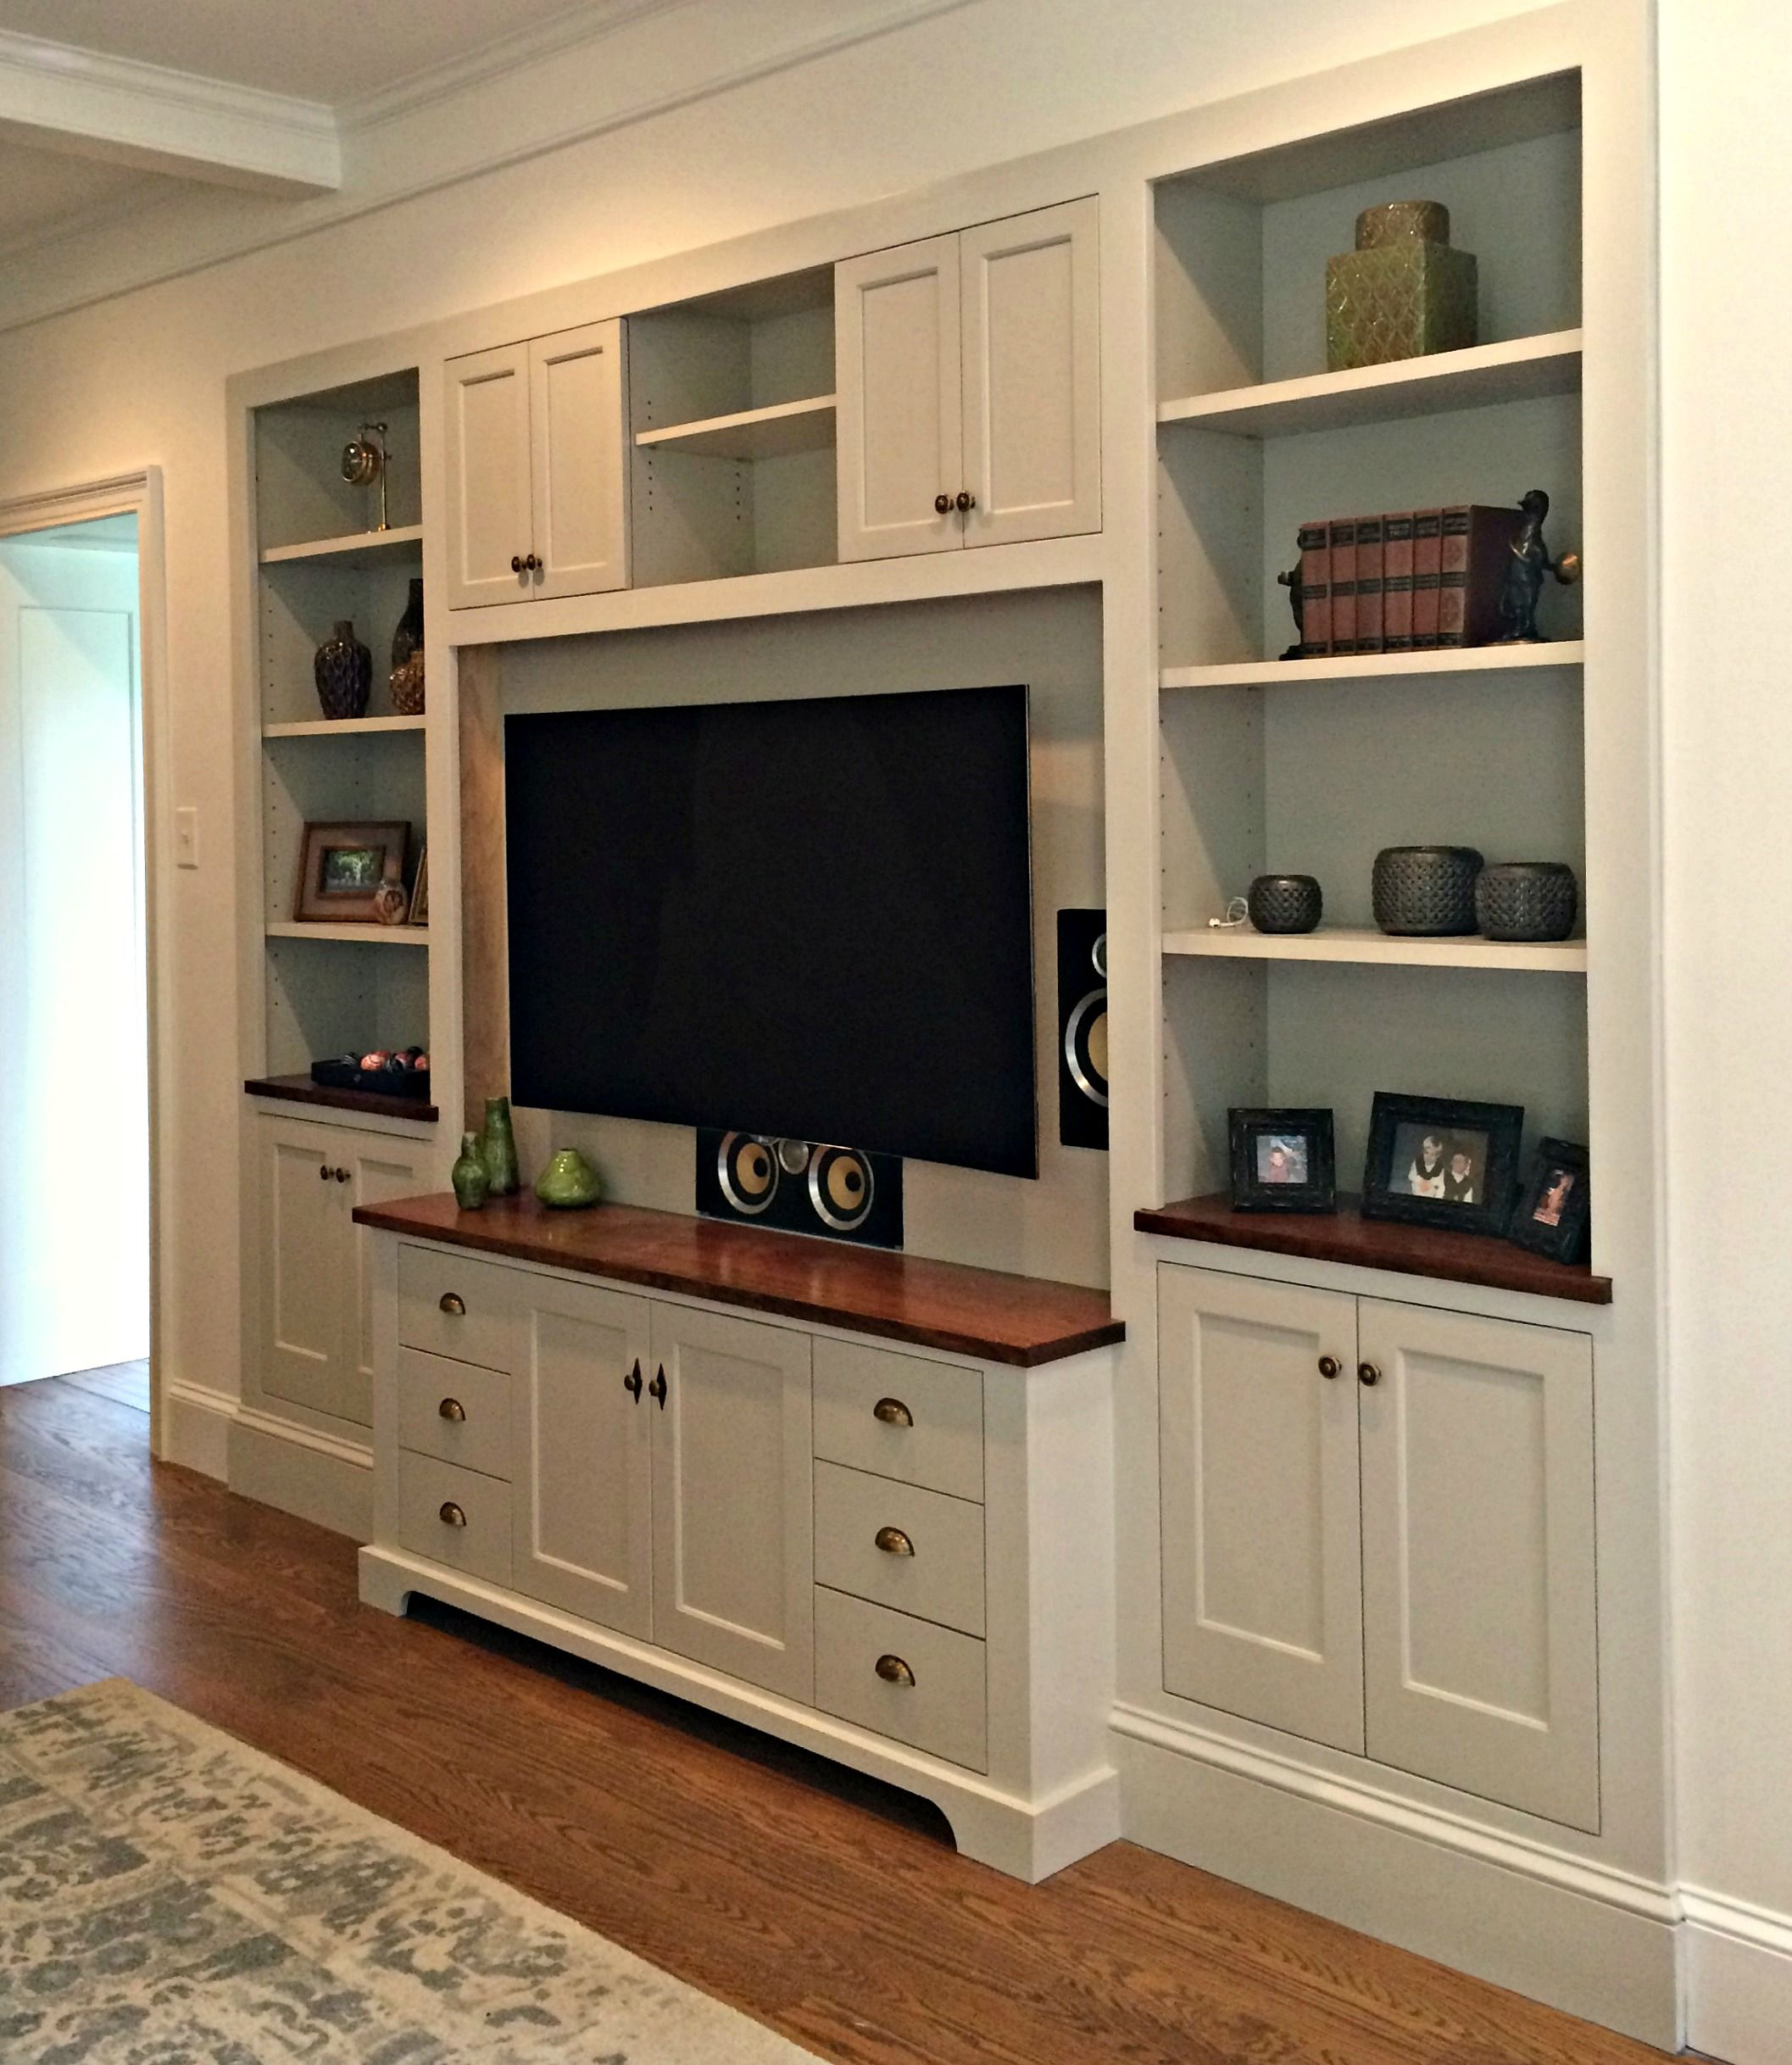 this custom entertainment center was recessed into the wall creating a seamless look painted in benjamin moore s revere pewter with cherry wood top and